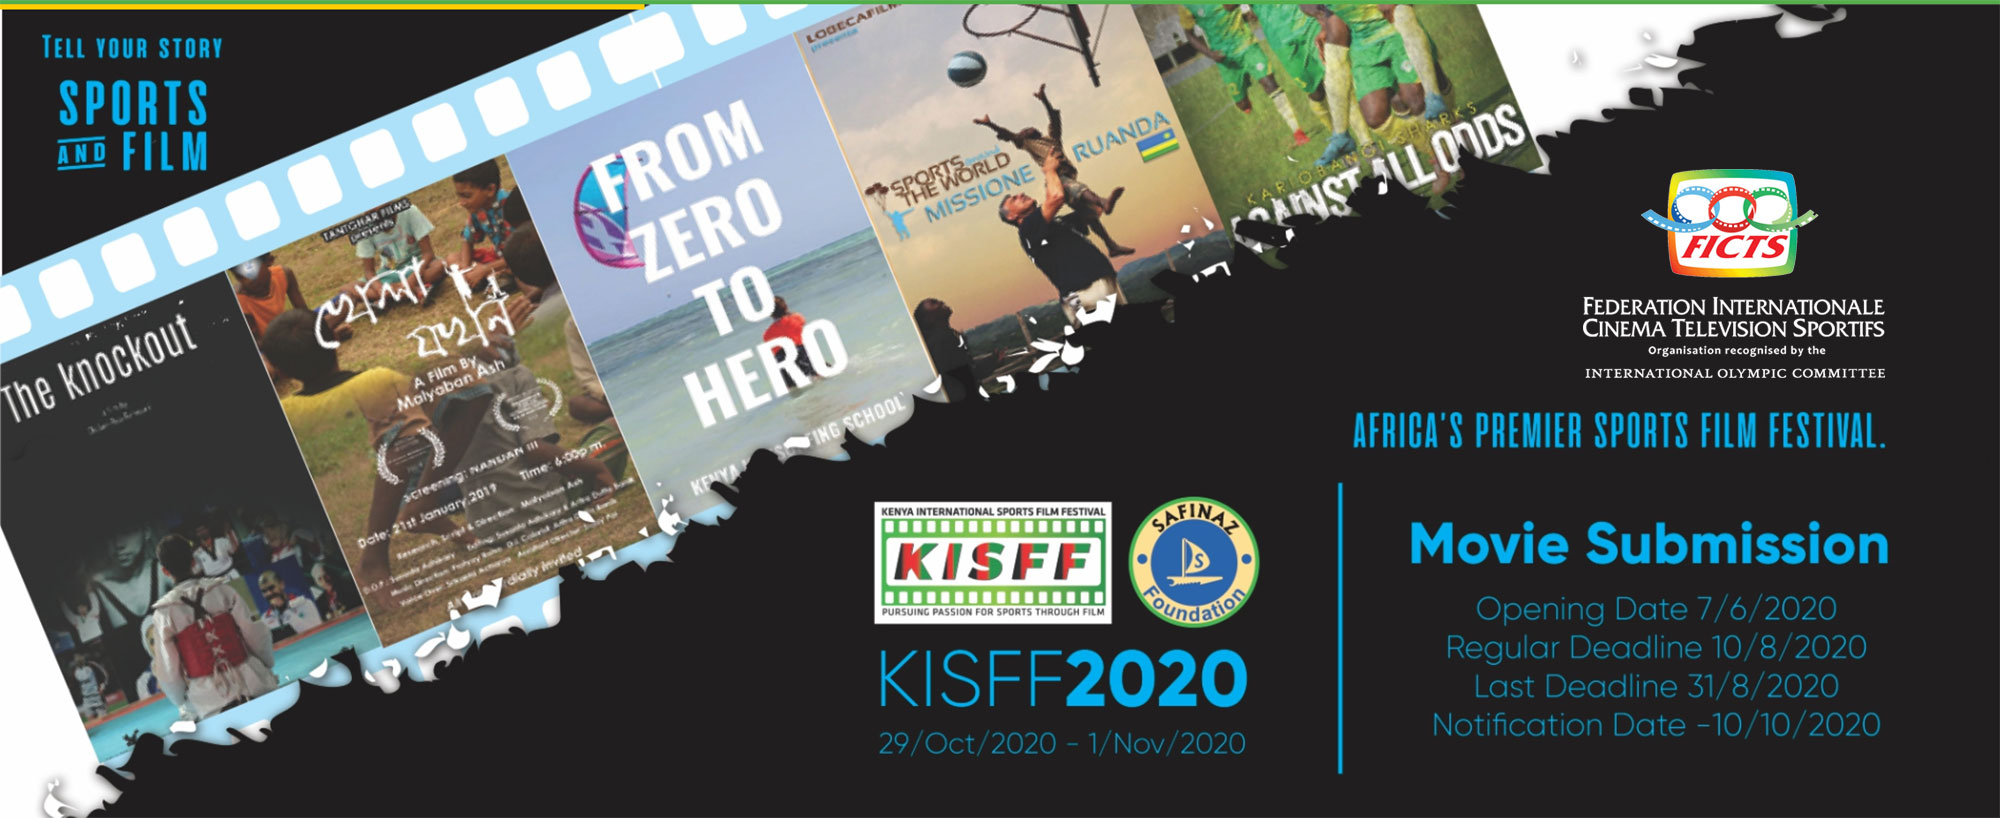 KENYA INTERNATIONAL SPORTS FICTS FILM FESTIVAL